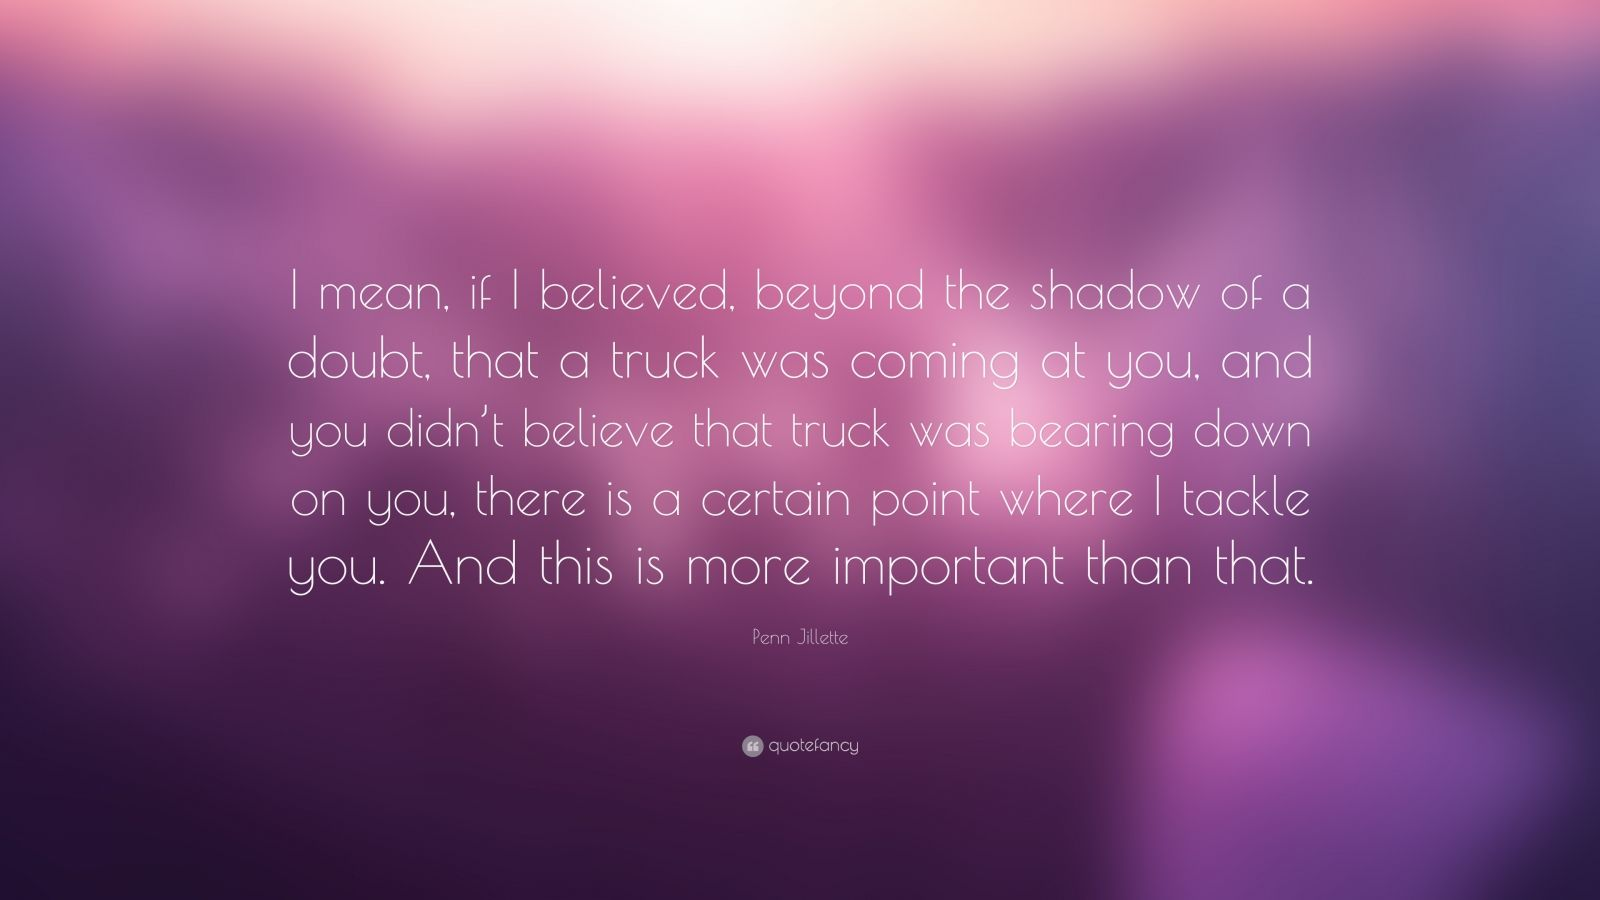 "Penn Jillette Quote: ""I mean, if I believed, beyond the shadow of a doubt, that a truck was coming at you, and you didn't believe that truck was bearing down on you, there is a certain point where I tackle you. And this is more important than that."""